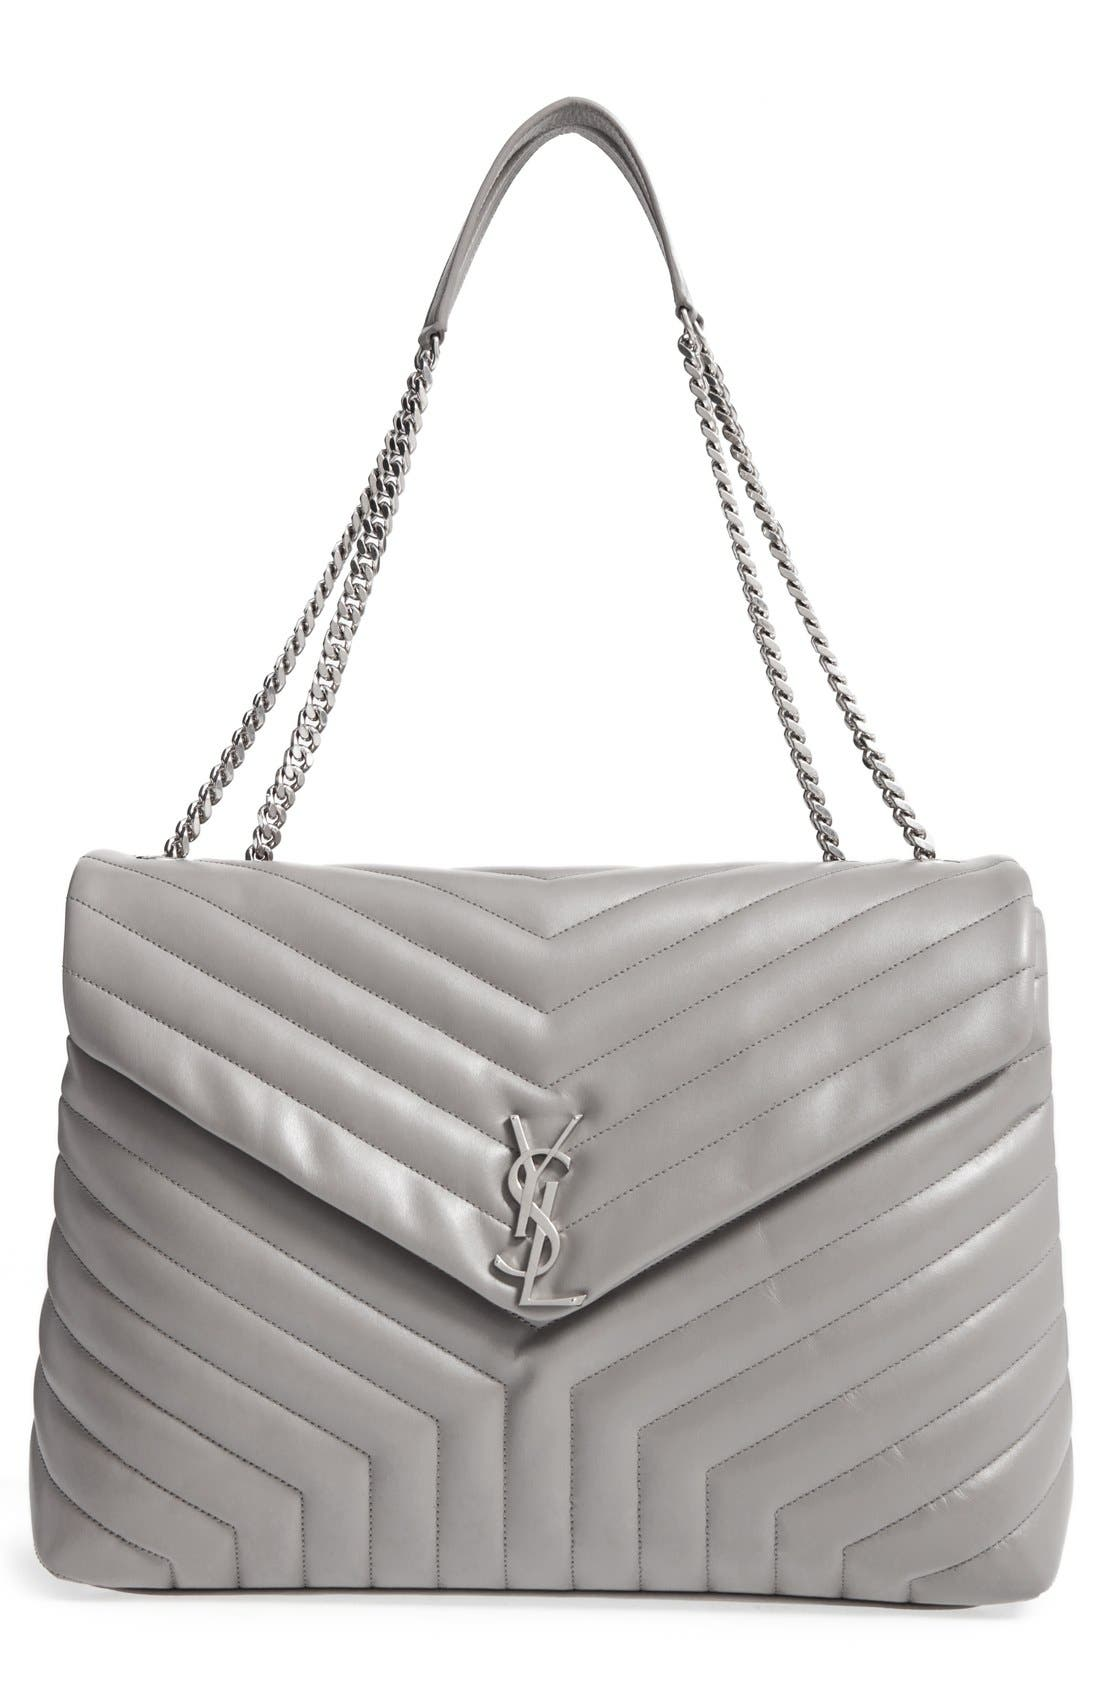 Monogram Quilted Leather Slouchy Shoulder Bag,                         Main,                         color, OYSTER